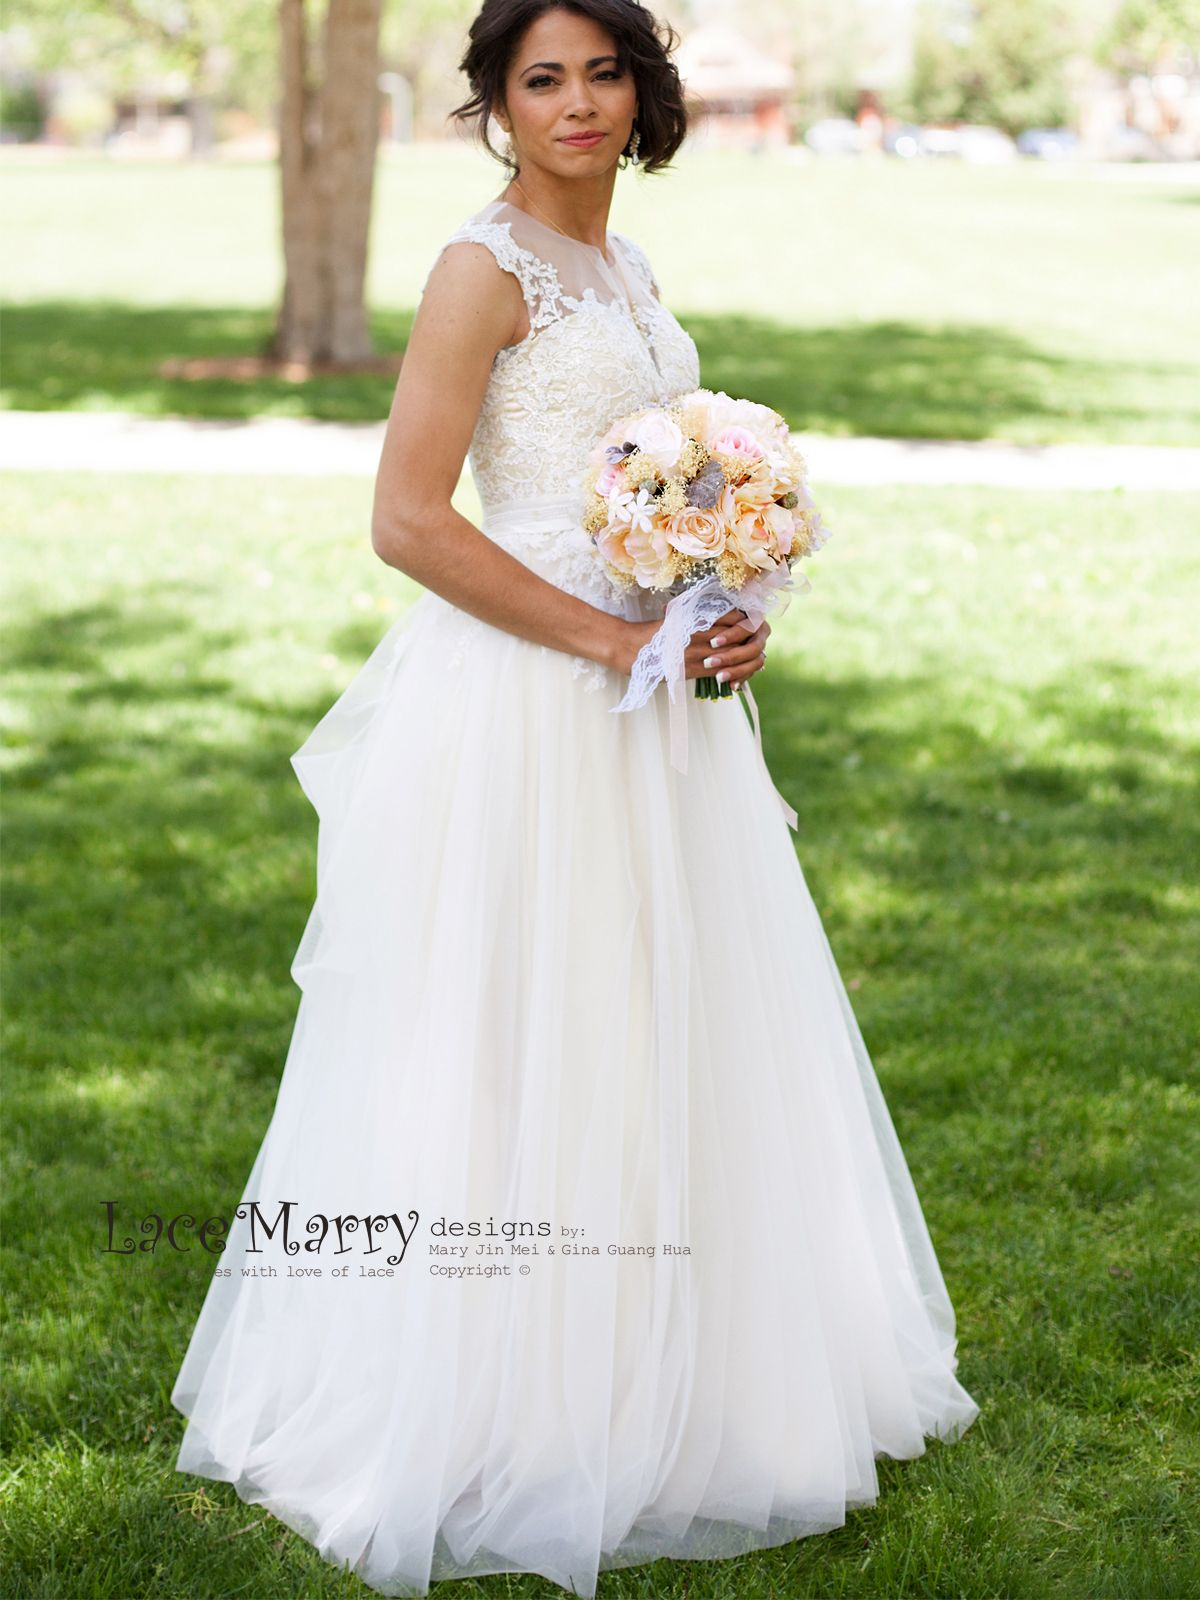 This bohemian wedding dress is made from airy overlay in ivory color